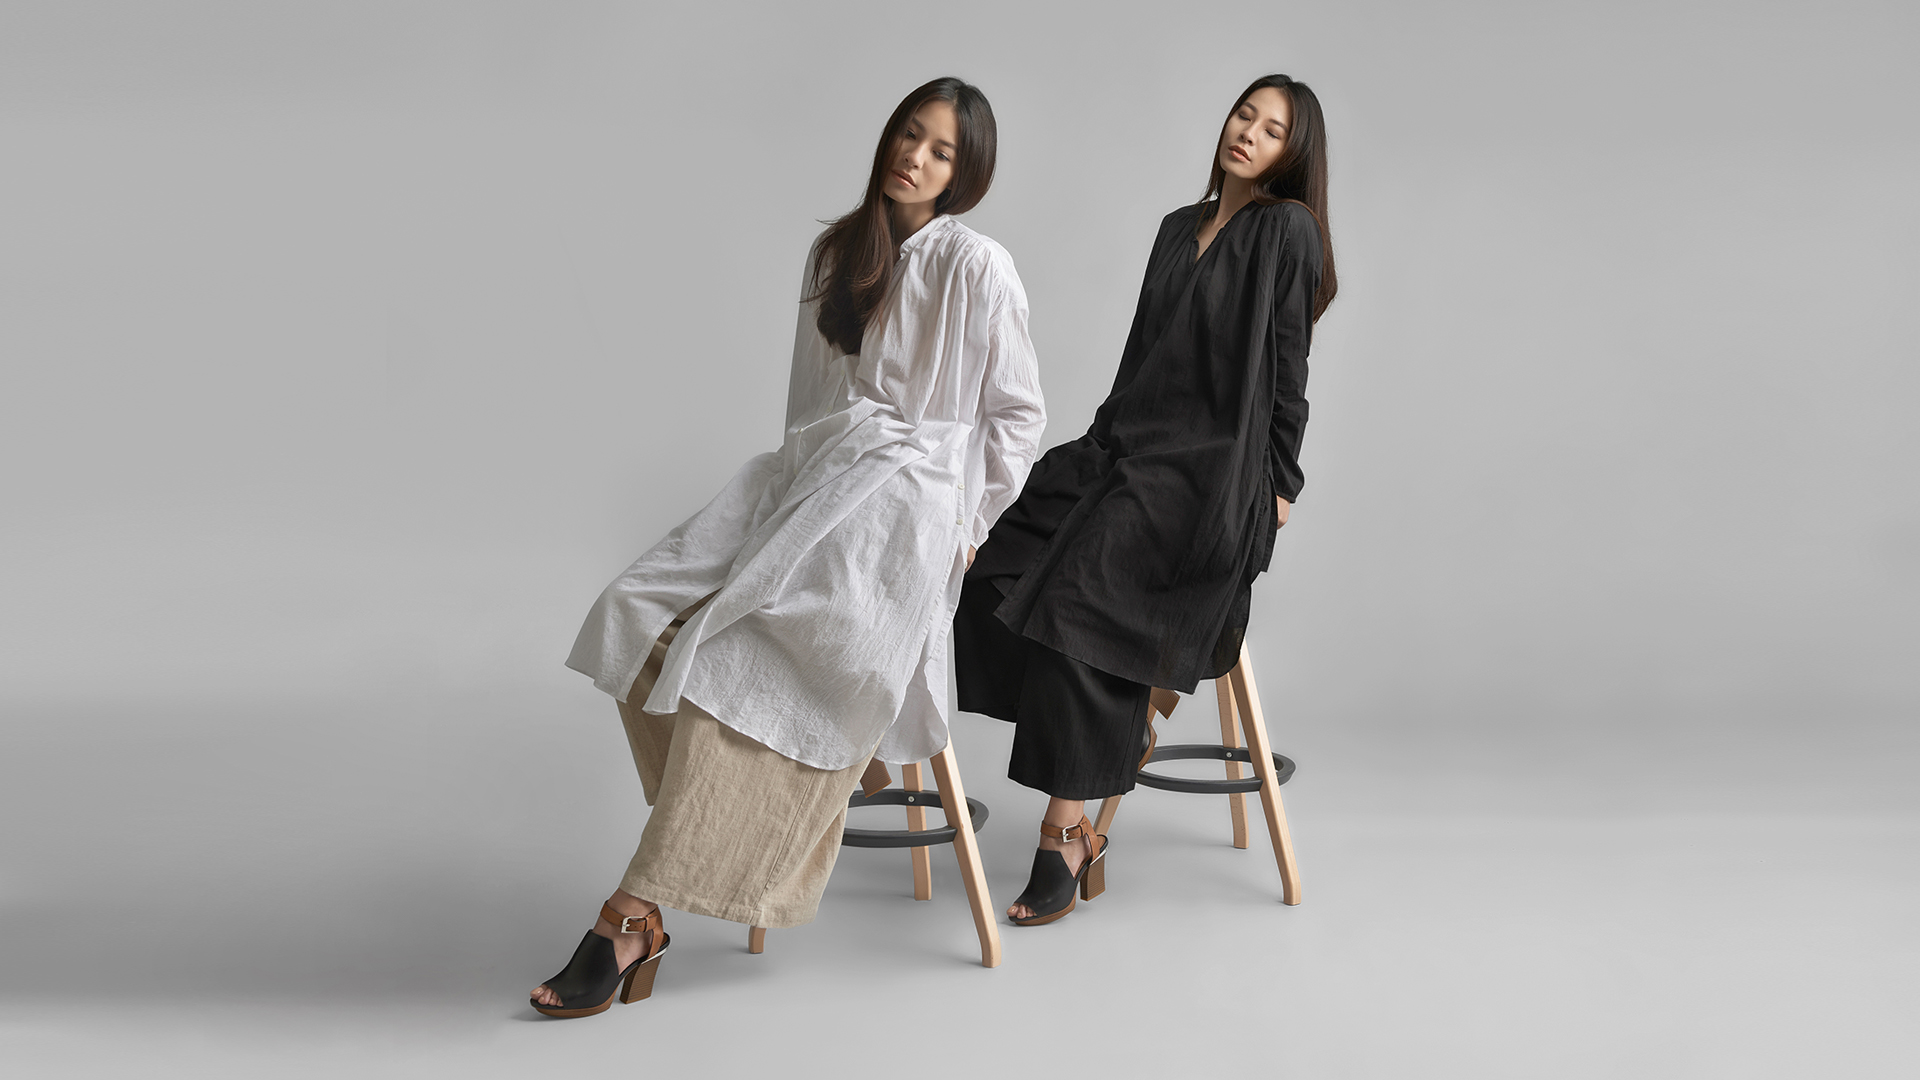 b3bfdfacf91 6 Sustainable Fashion Brands in Indonesia - What's New Jakarta